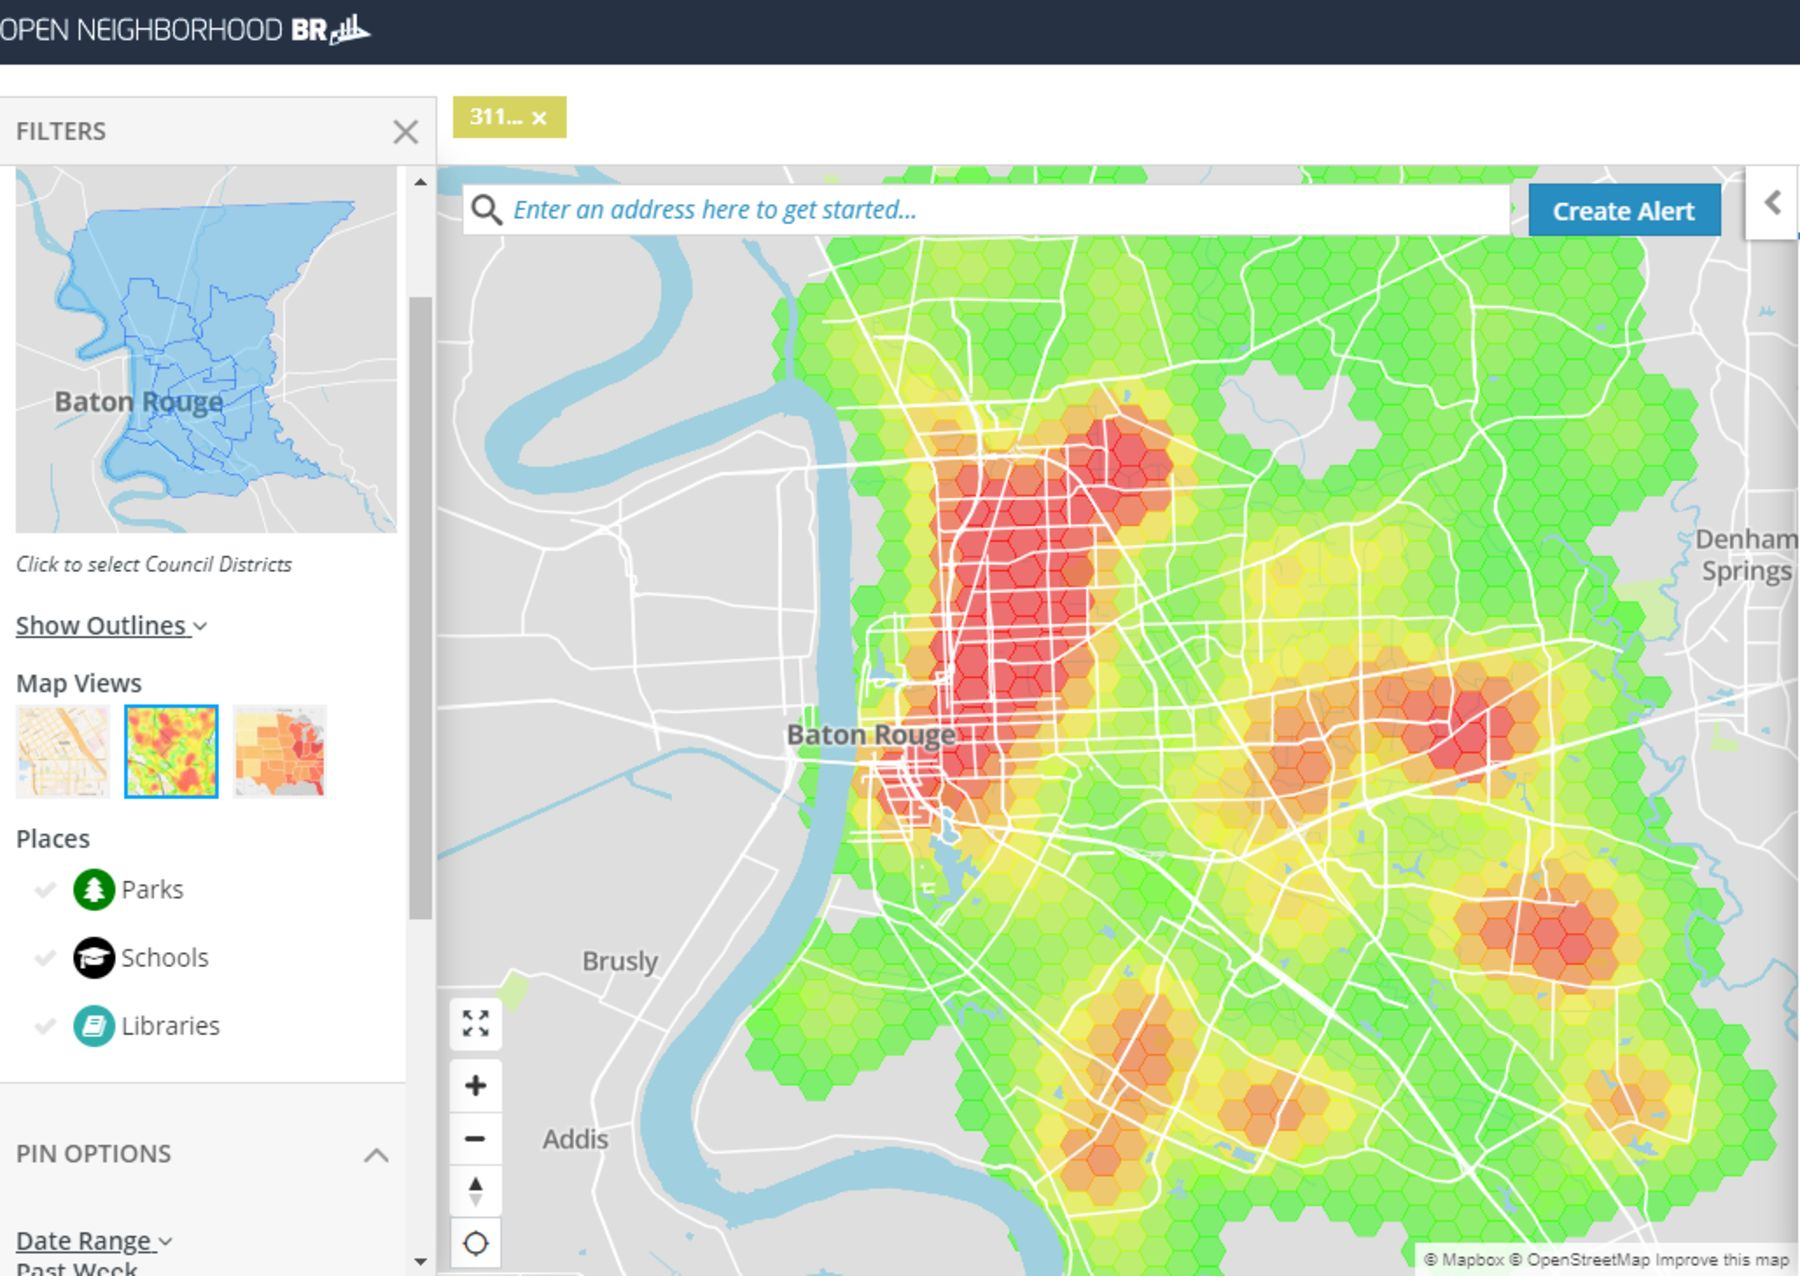 The Open Data BR platform in Baton Rouge, Louisiana,allows residents to track 311 calls by location.